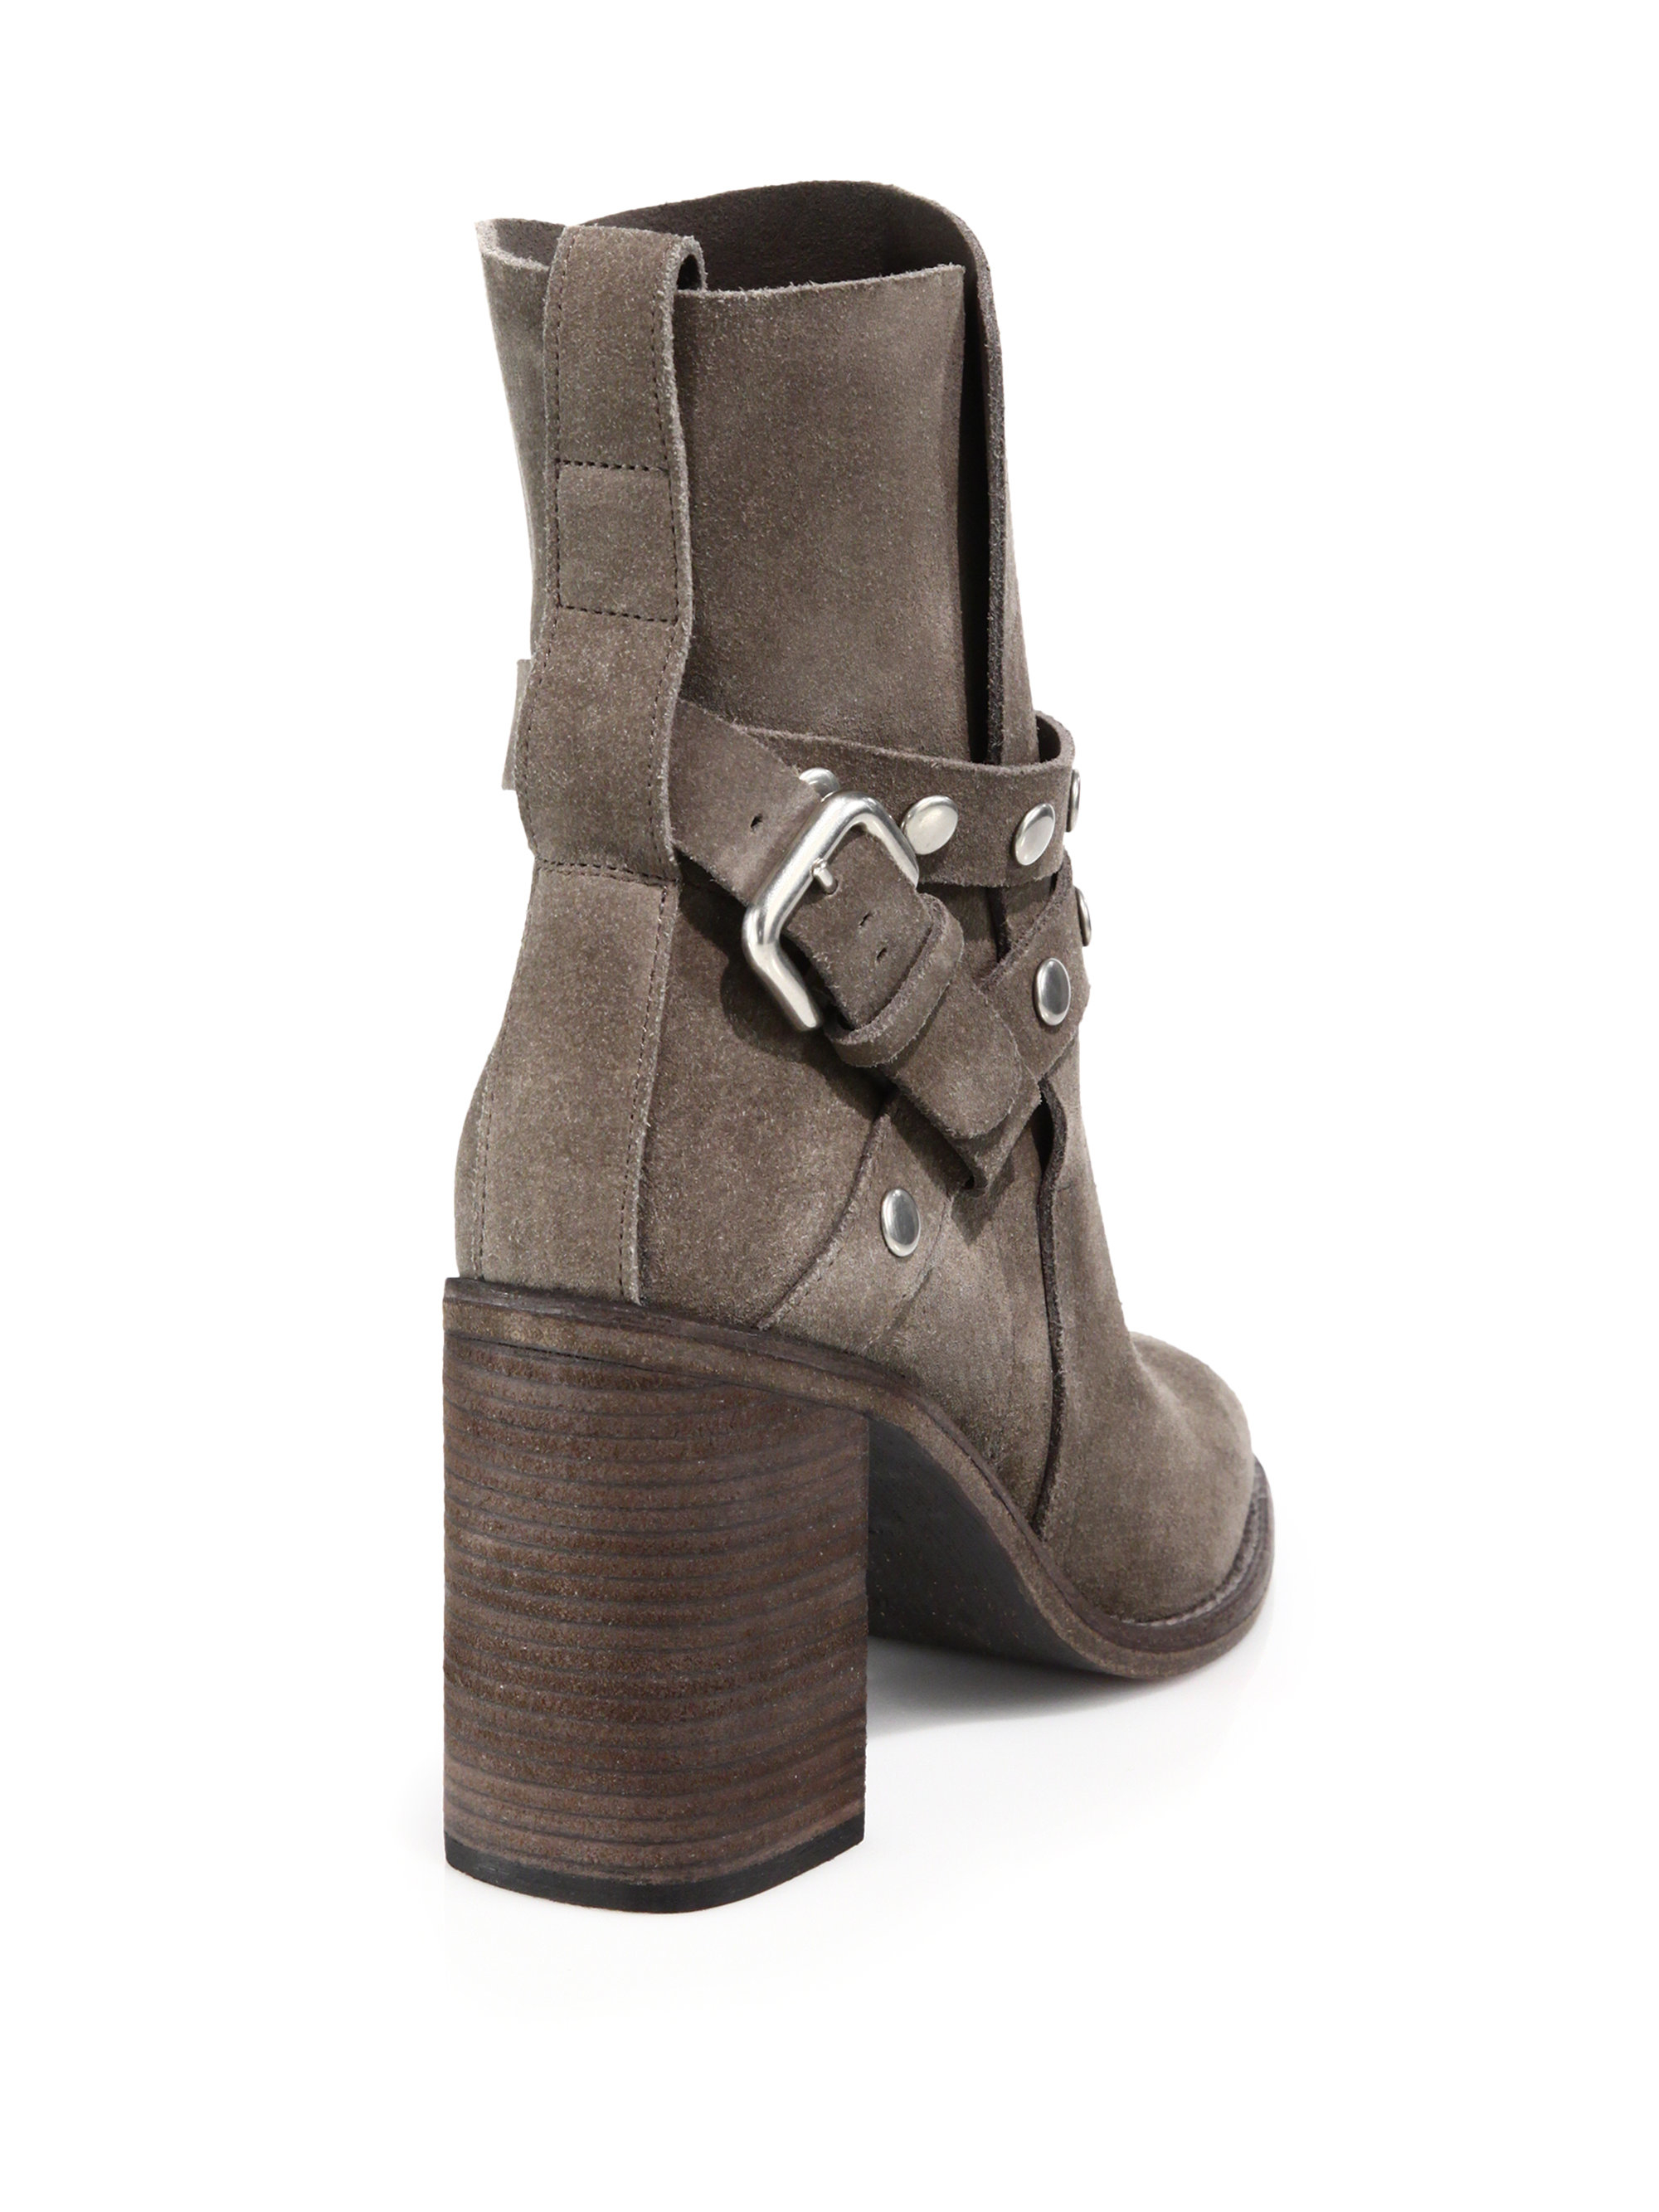 d63bda28e6881 See by chloé Janis Studded Suede Ankle Boots in Gray